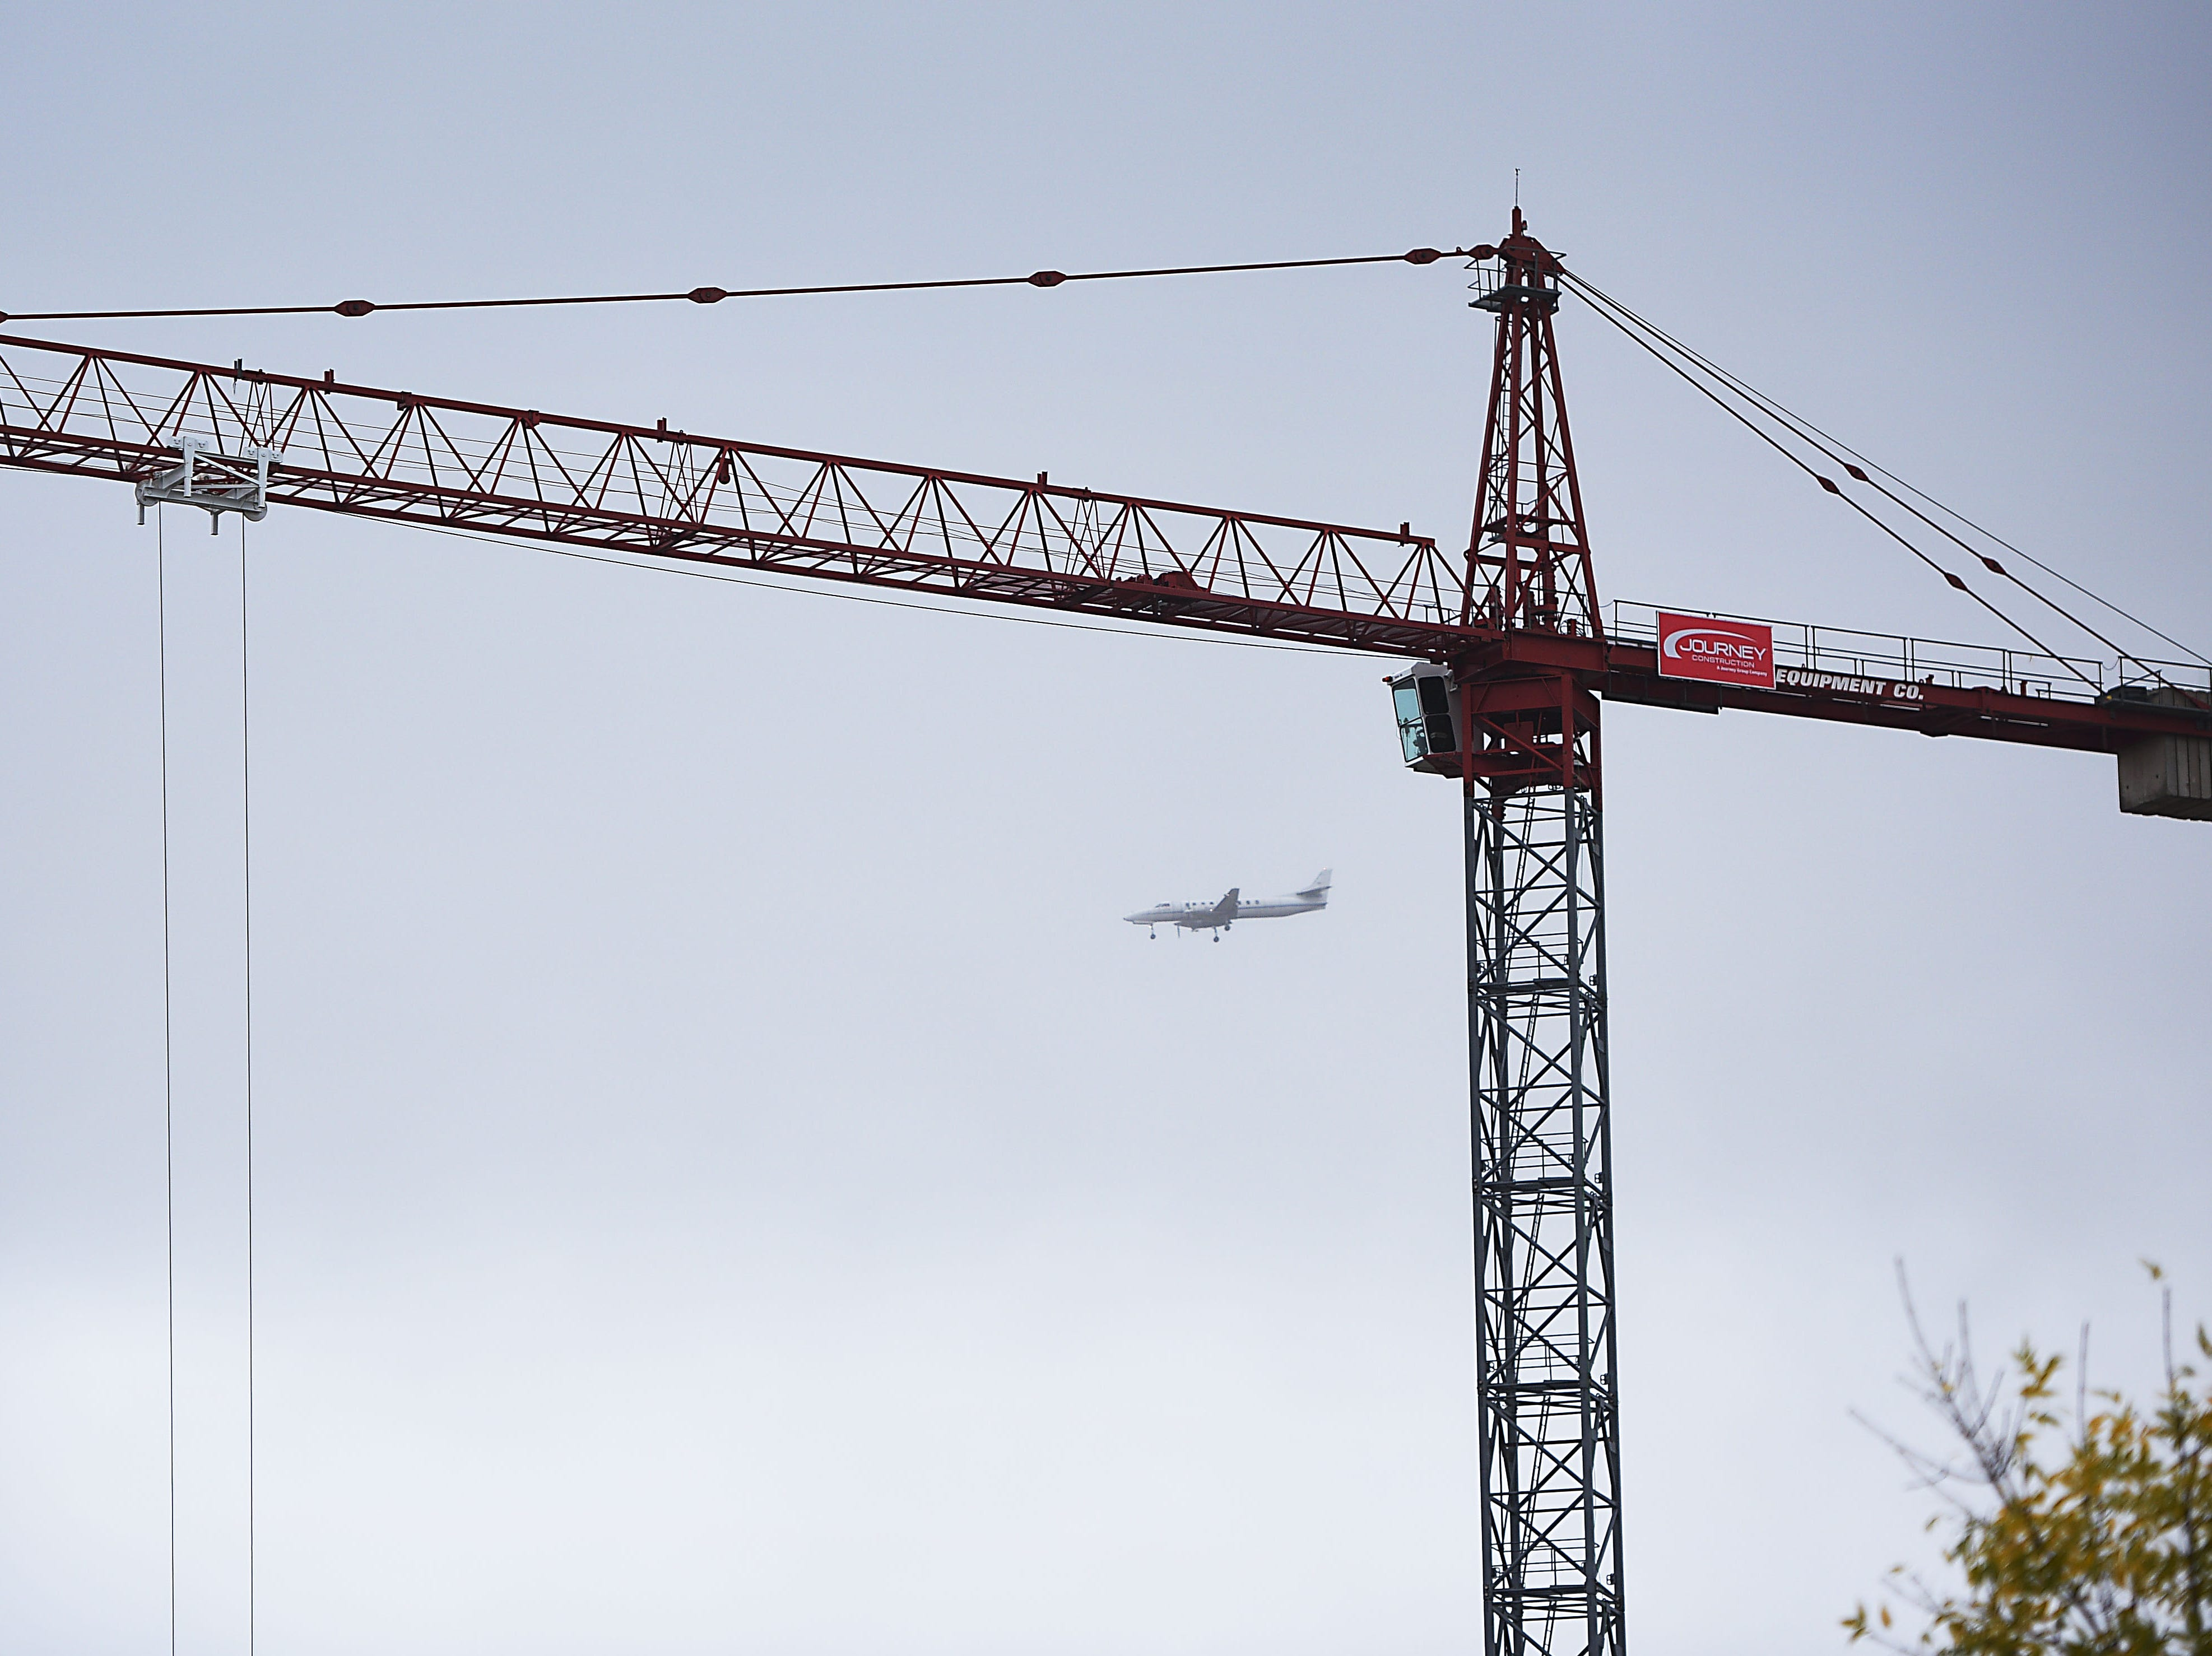 A plane flies by the massive crane that has been erected downtown Wednesday, Oct. 10, in Sioux Falls. The crane is used to erect steel in the Village on the River mixed use parking ramp.